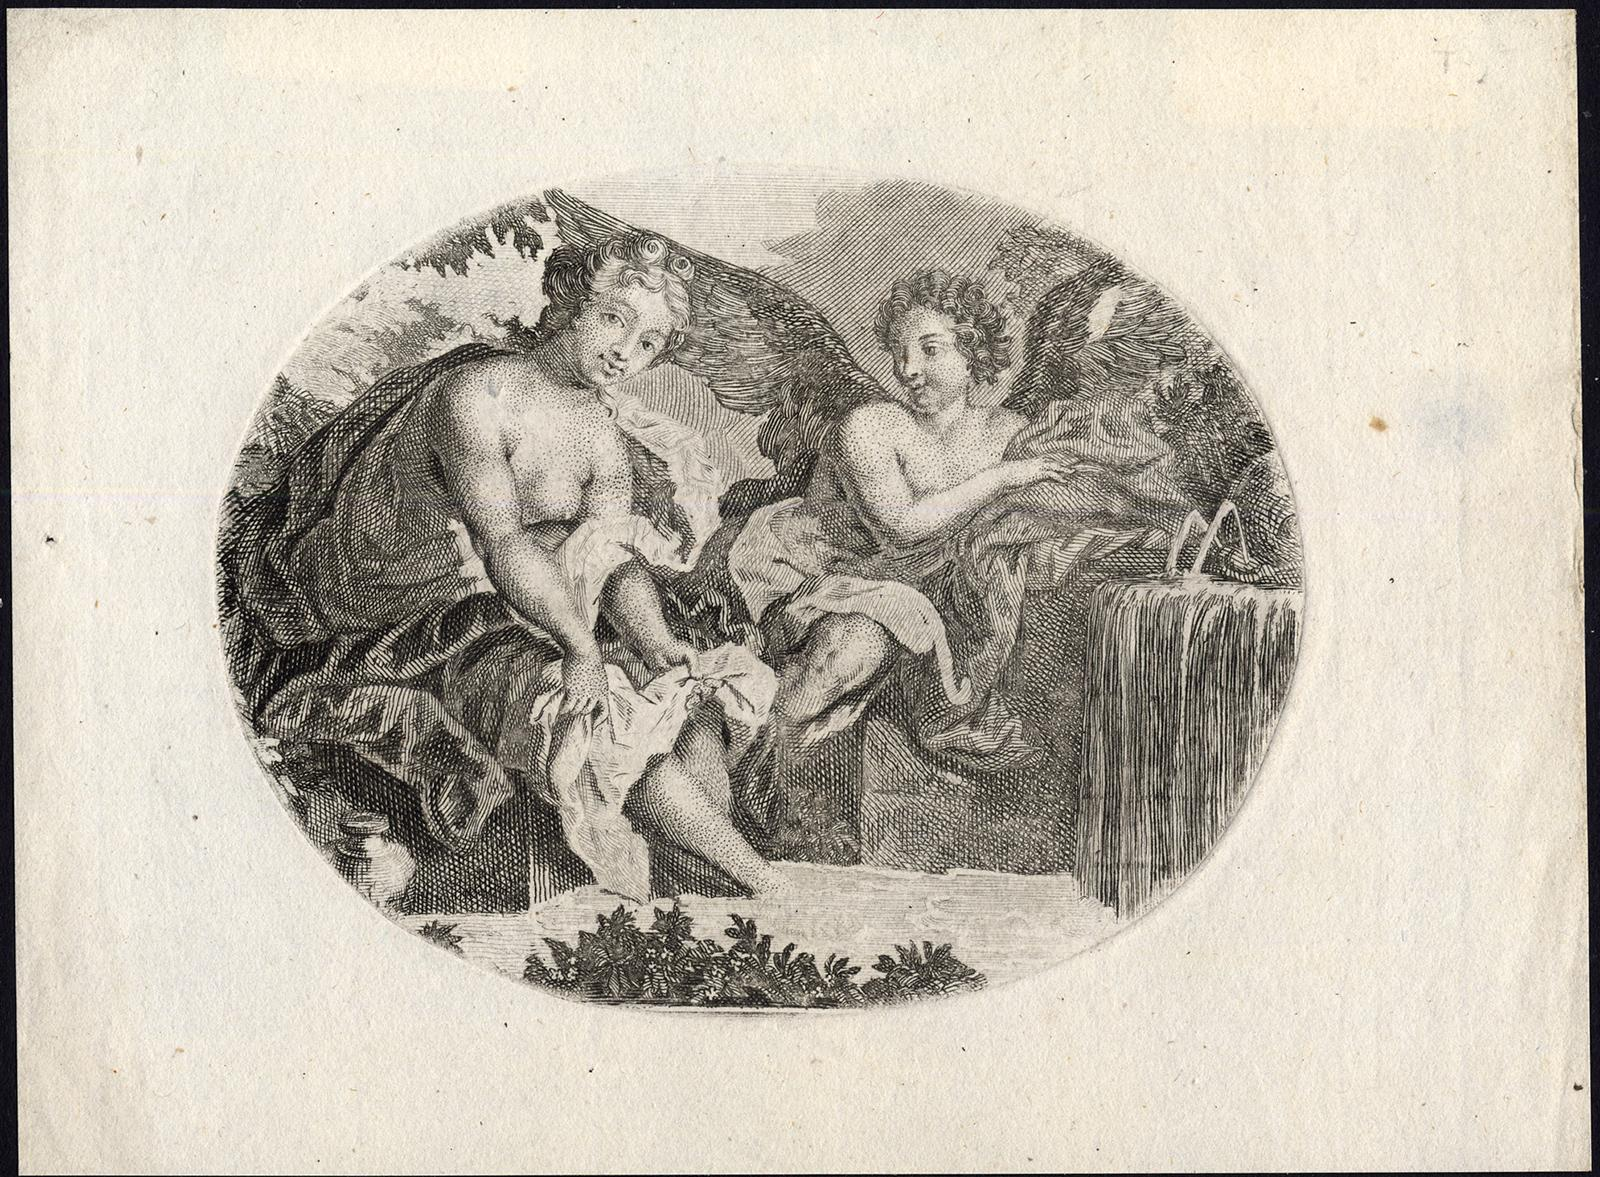 Antique Master Print-ANGEL-NUDE-WOMAN-WASHING CLOTHES-BASIN-c. 1780